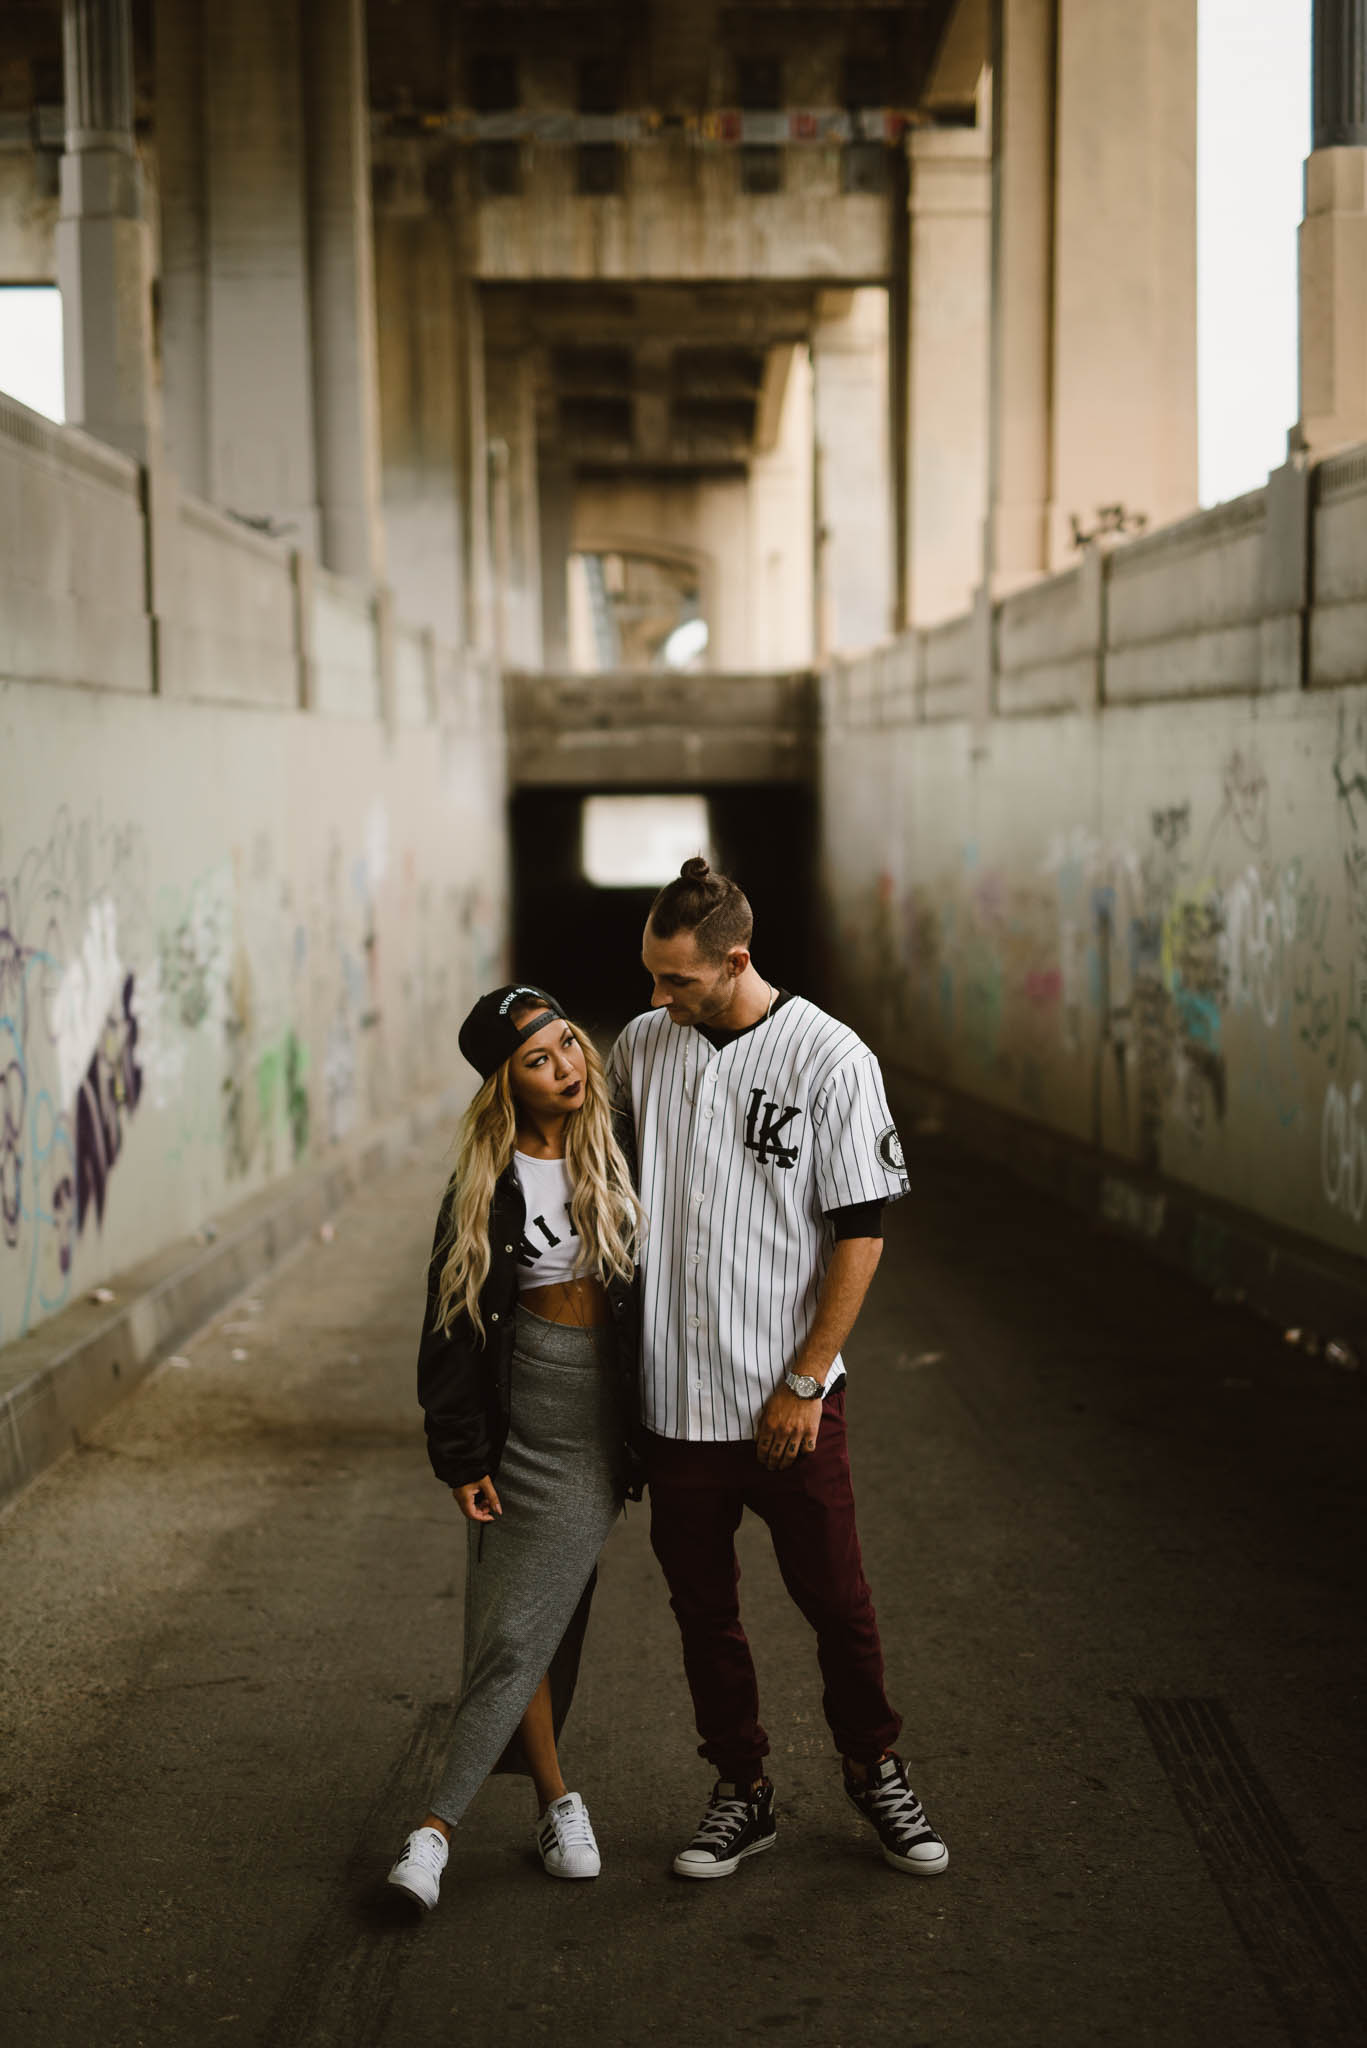 ©Isaiah-&-Taylor-Photography---Downtown-Los-Angeles-Skyline-Engagement-011.jpg